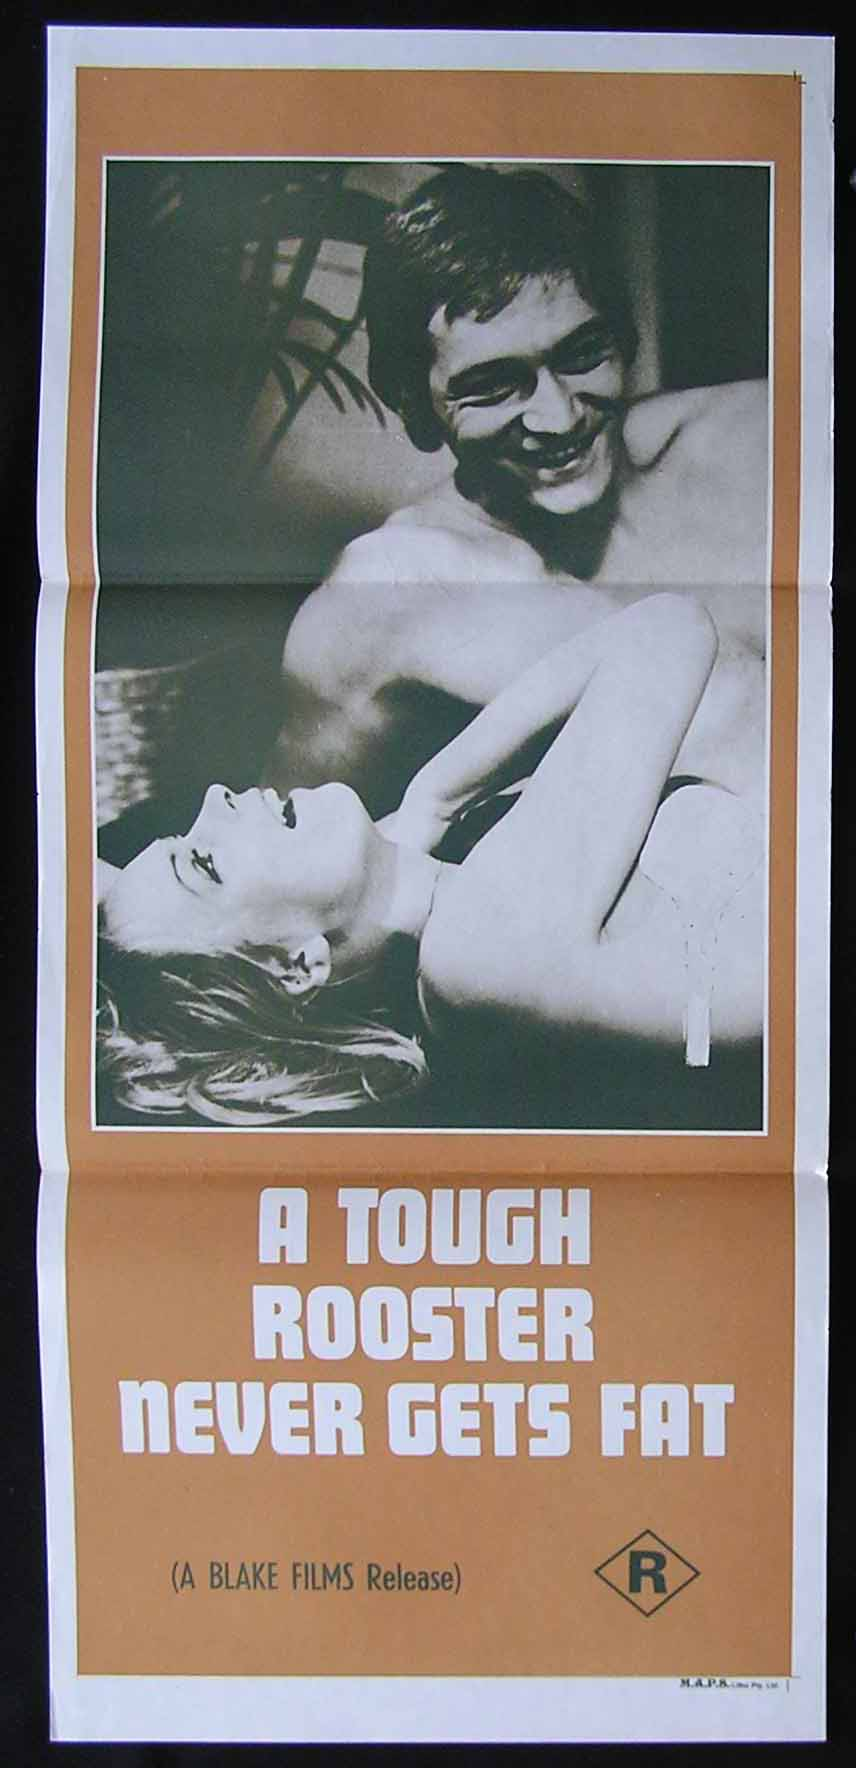 A TOUGH ROOSTER NEVER GETS FAT, Jan Boven, Rainer Peets, Tina Traven, Karin Lorson, Gina Janssen, Sexploitation poster